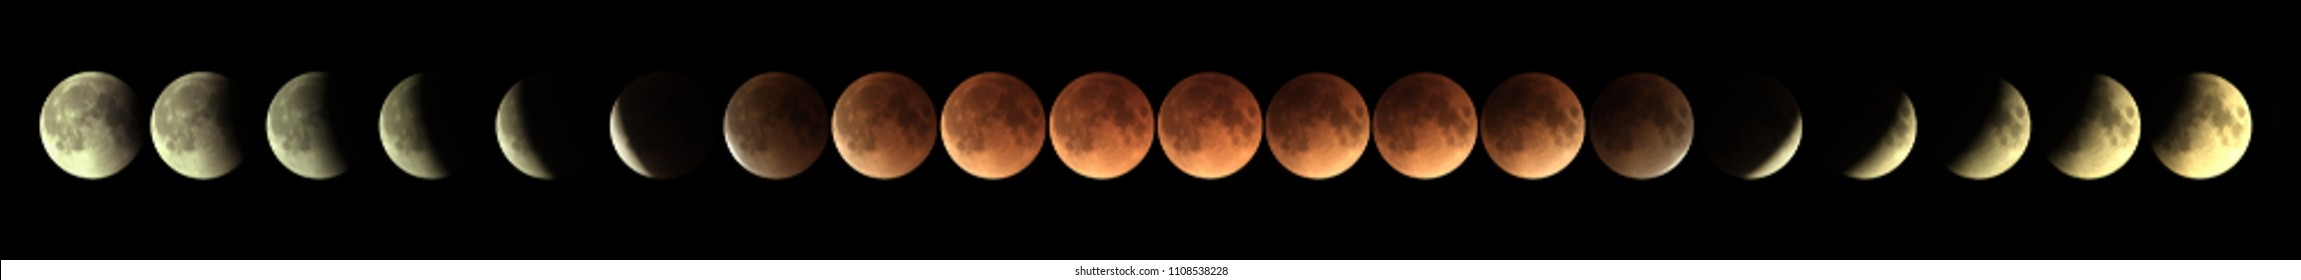 time series of total Lunar eclipse  on 31 January 2018 as it appeared as supermoon at perigee and also a blue Moon as a second full moon of January 2018 each image represented 10 minutes apart.